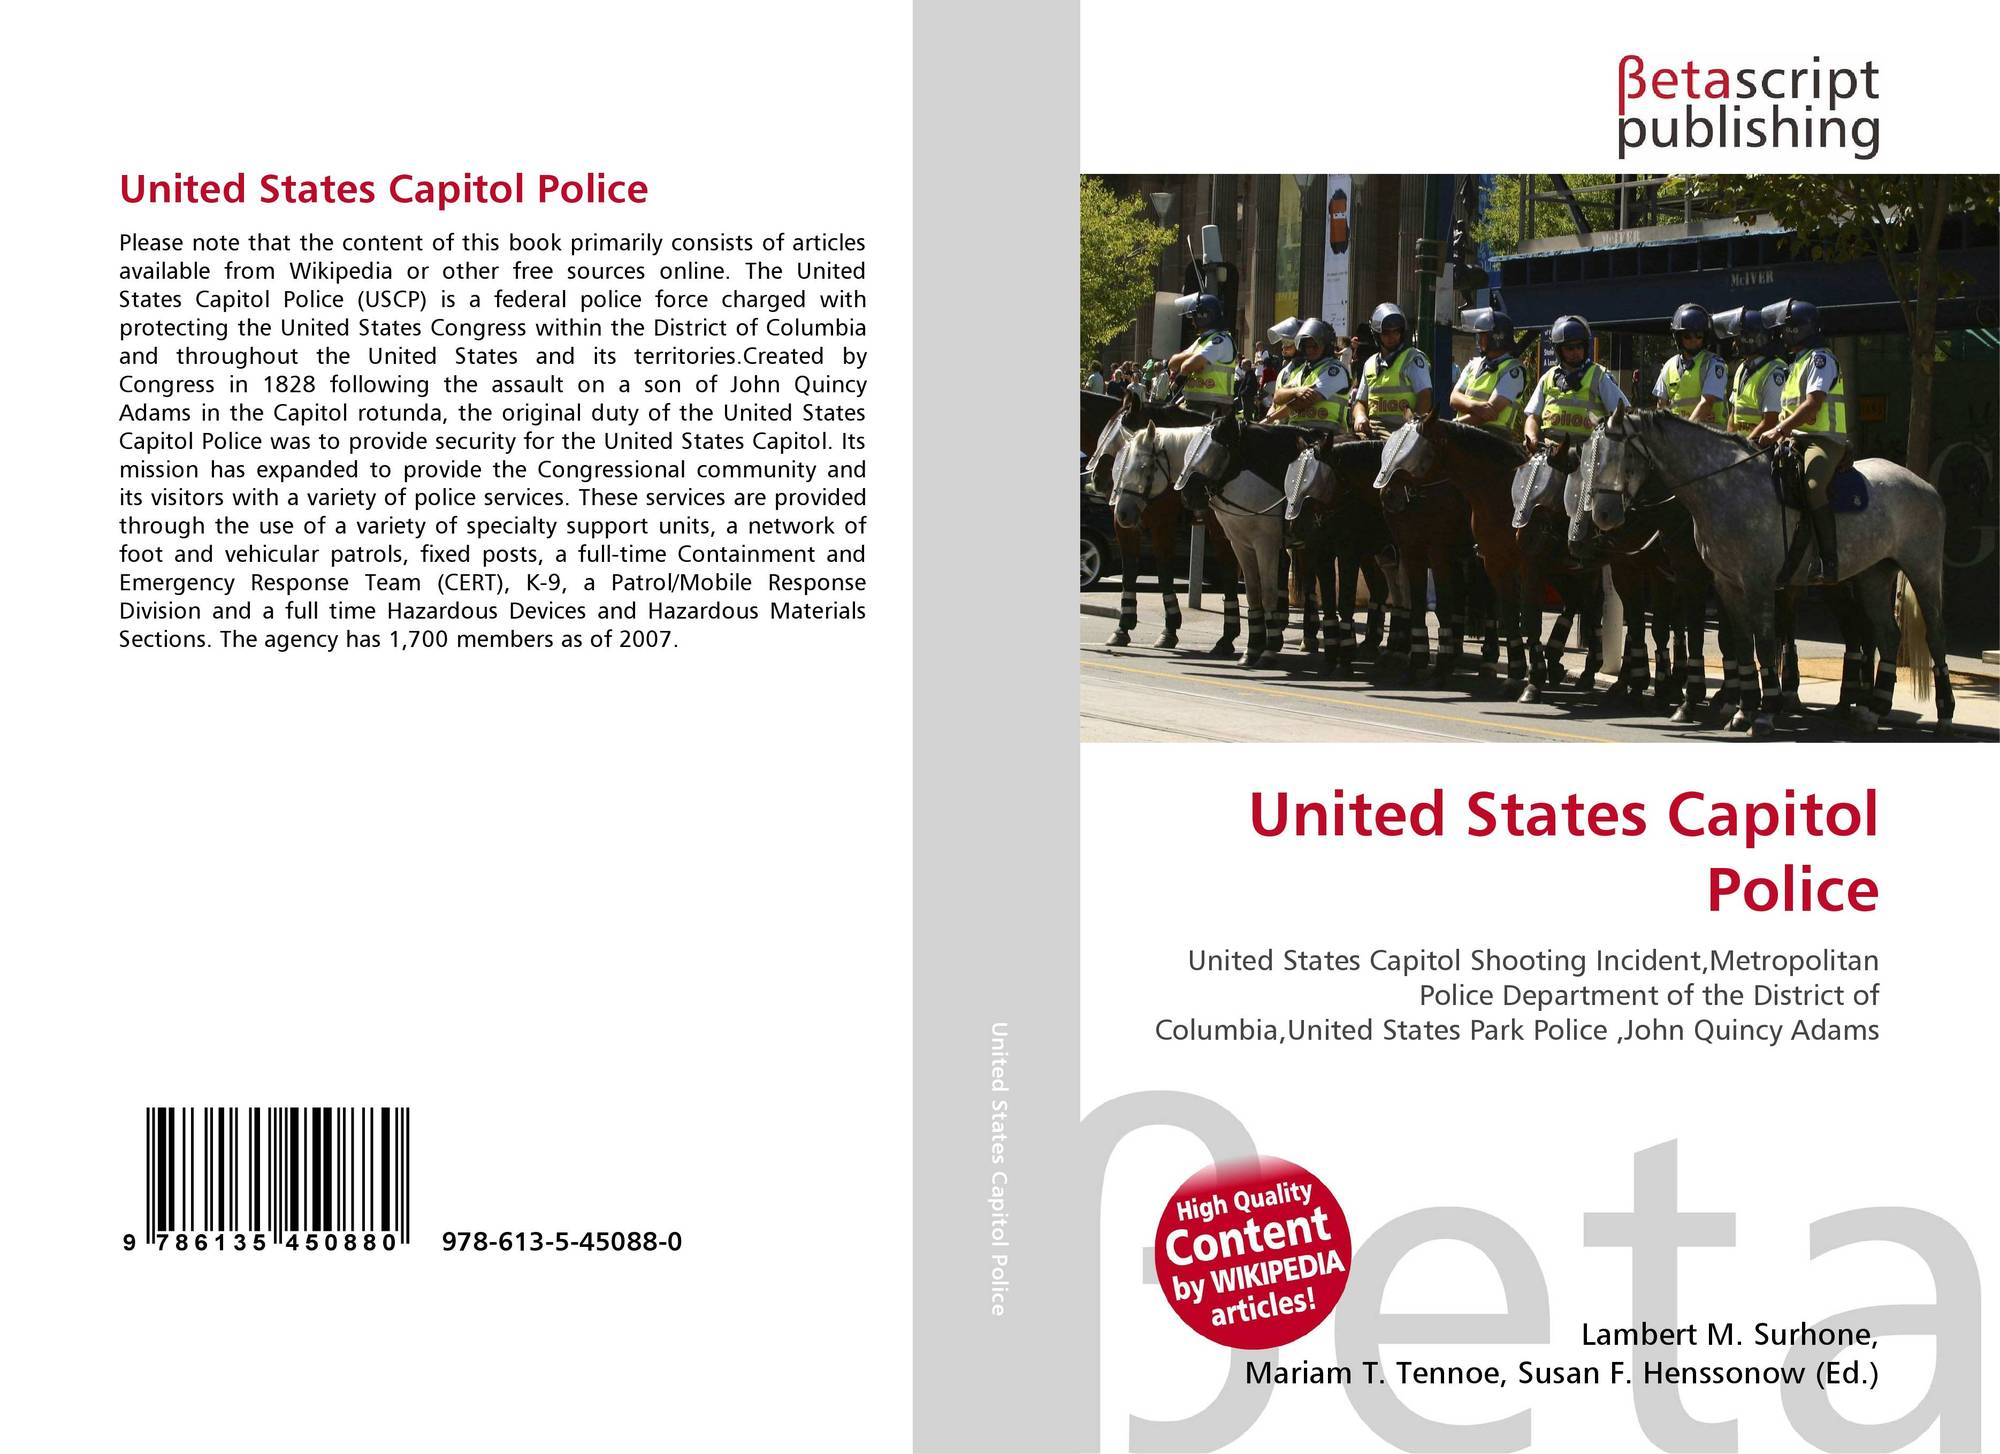 an analysis of high horse of world policing in united states New york city police department  the nypd is one of the oldest police departments in the united states,  due to its high-profile location in the largest.